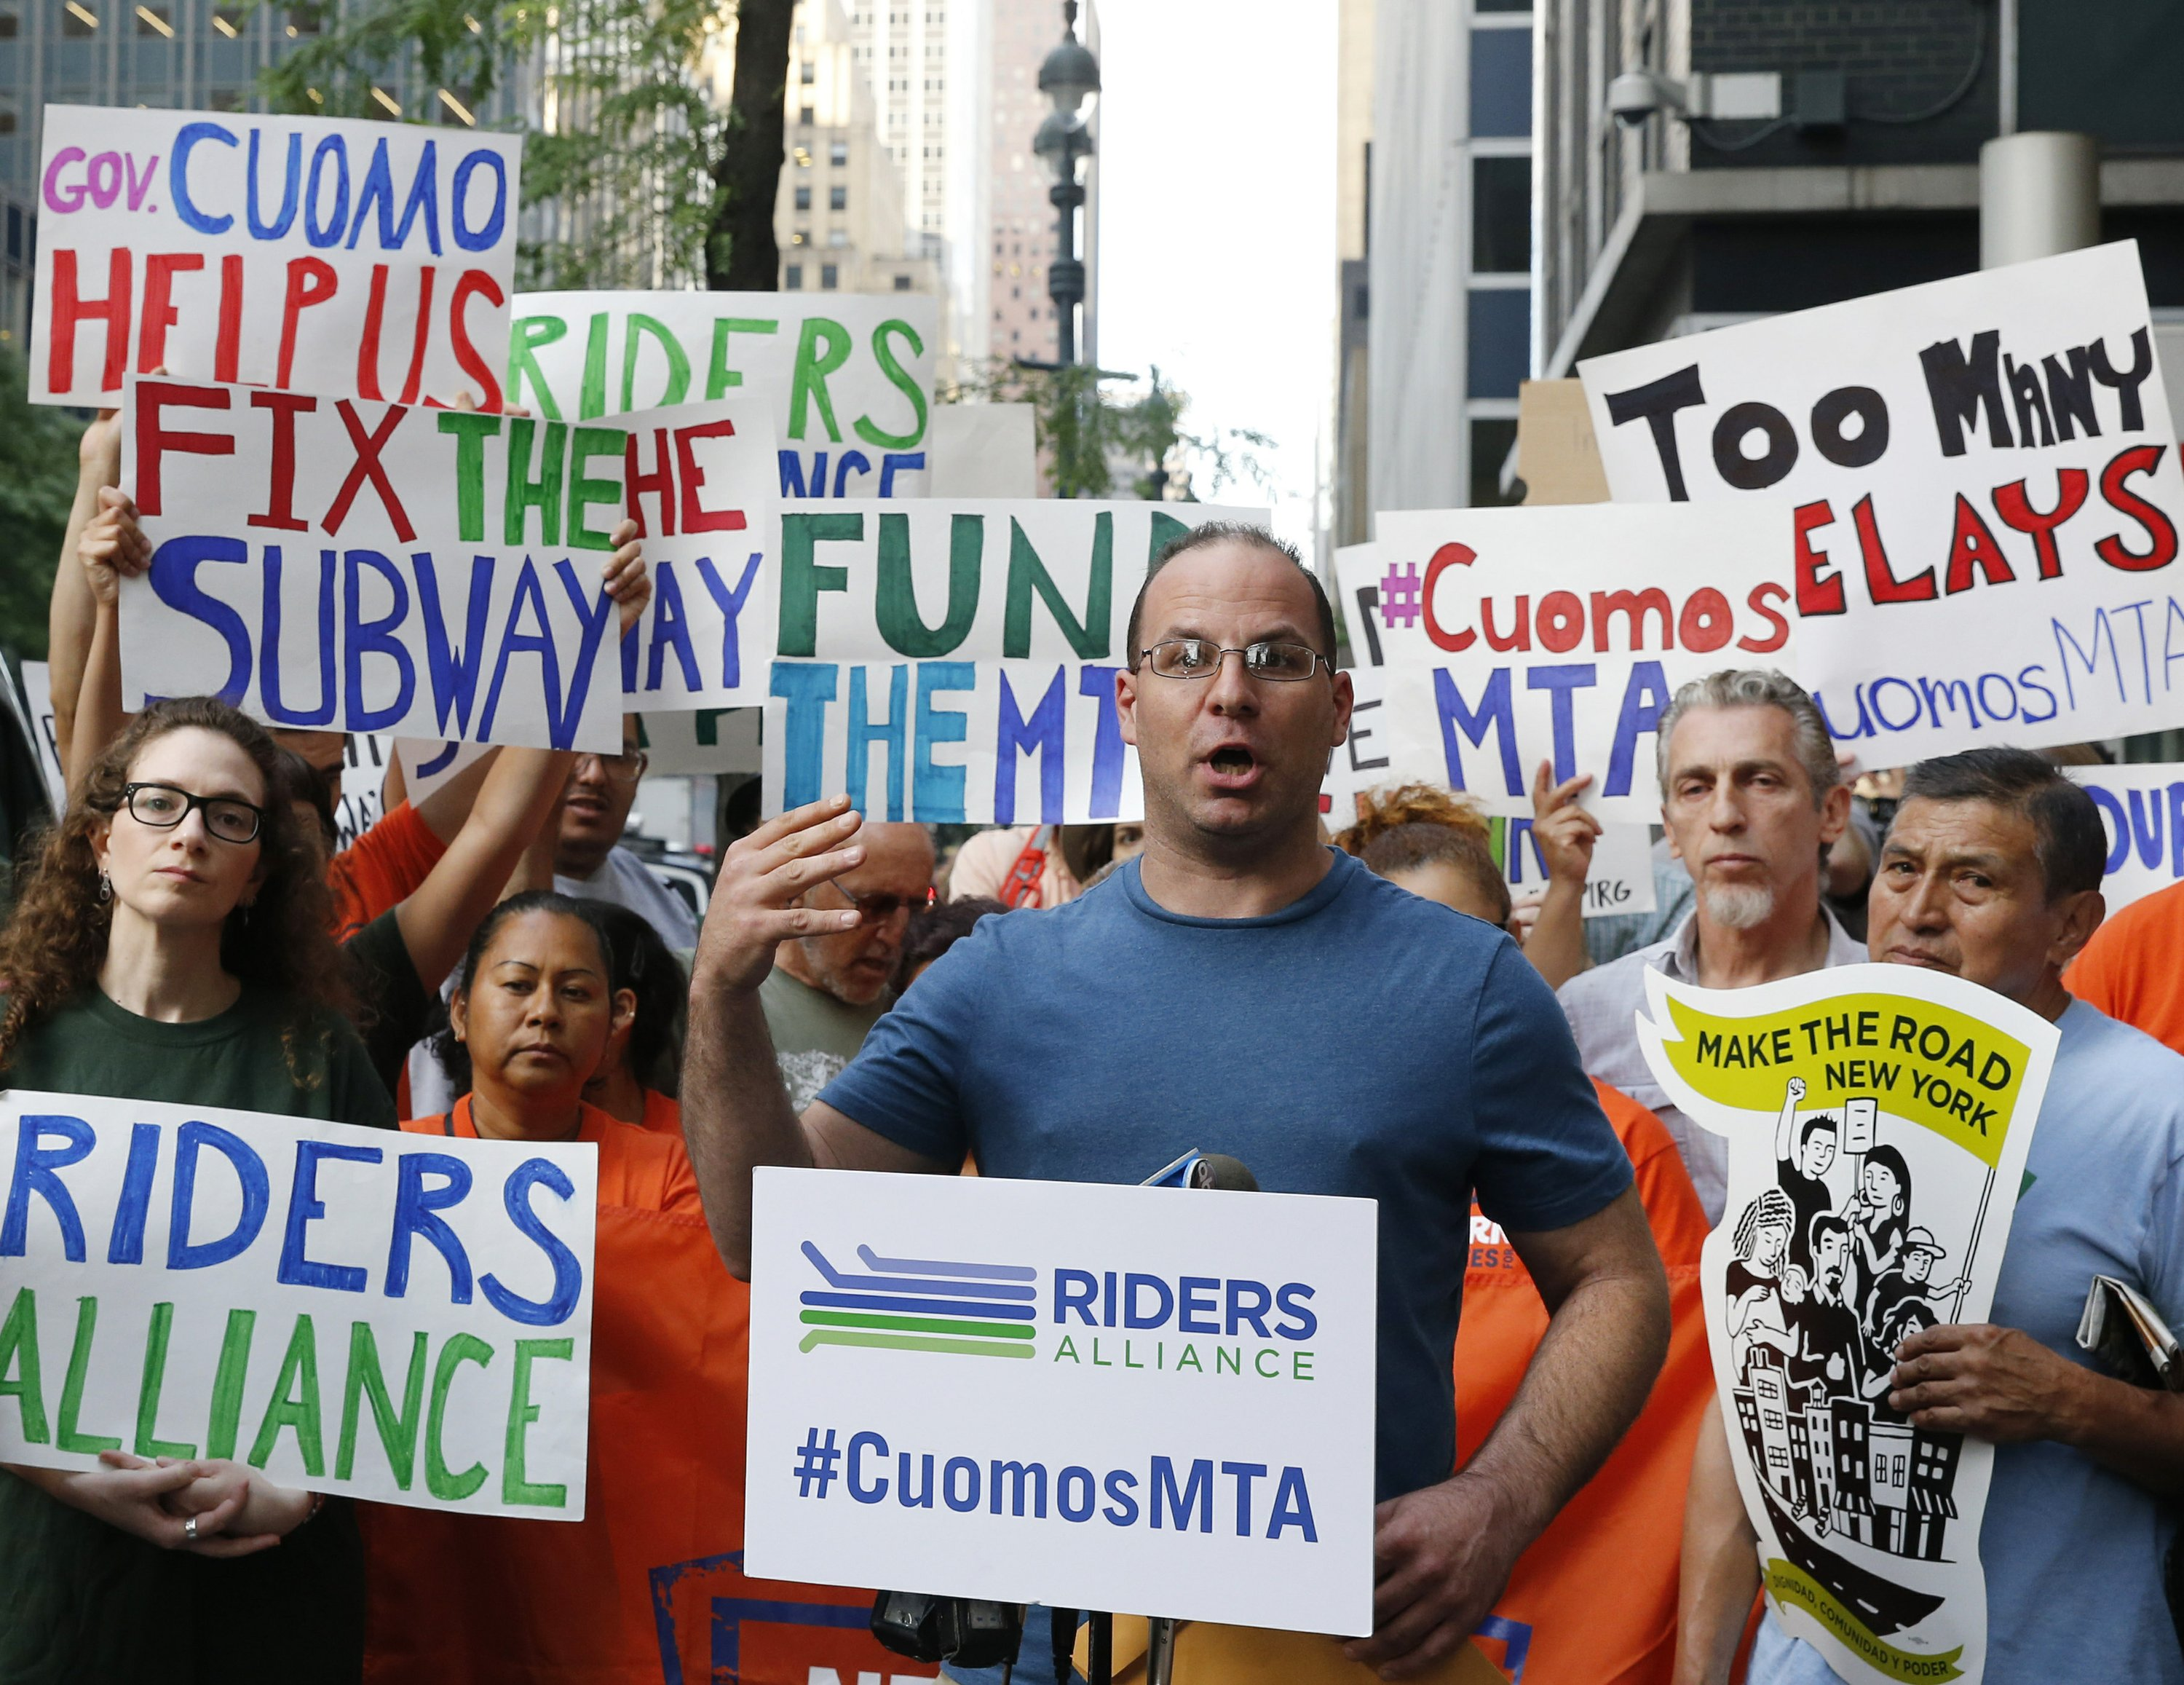 Governor declares state of emergency for NYC transit system